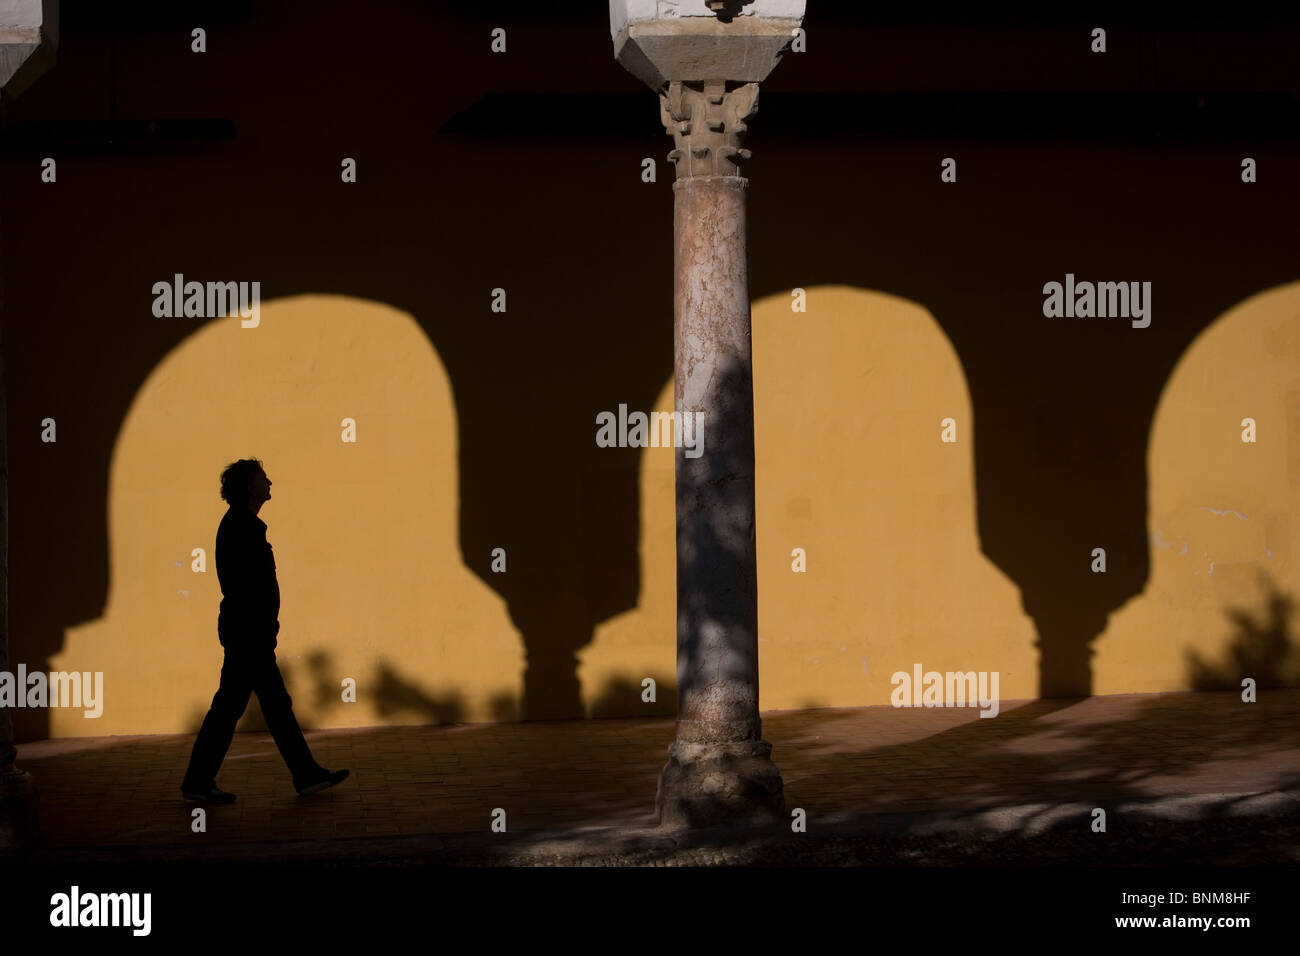 A tourist walks in the Mosque and Cathedral of Cordoba, Andalusia, Spain, April 27, 2010. Stock Photo